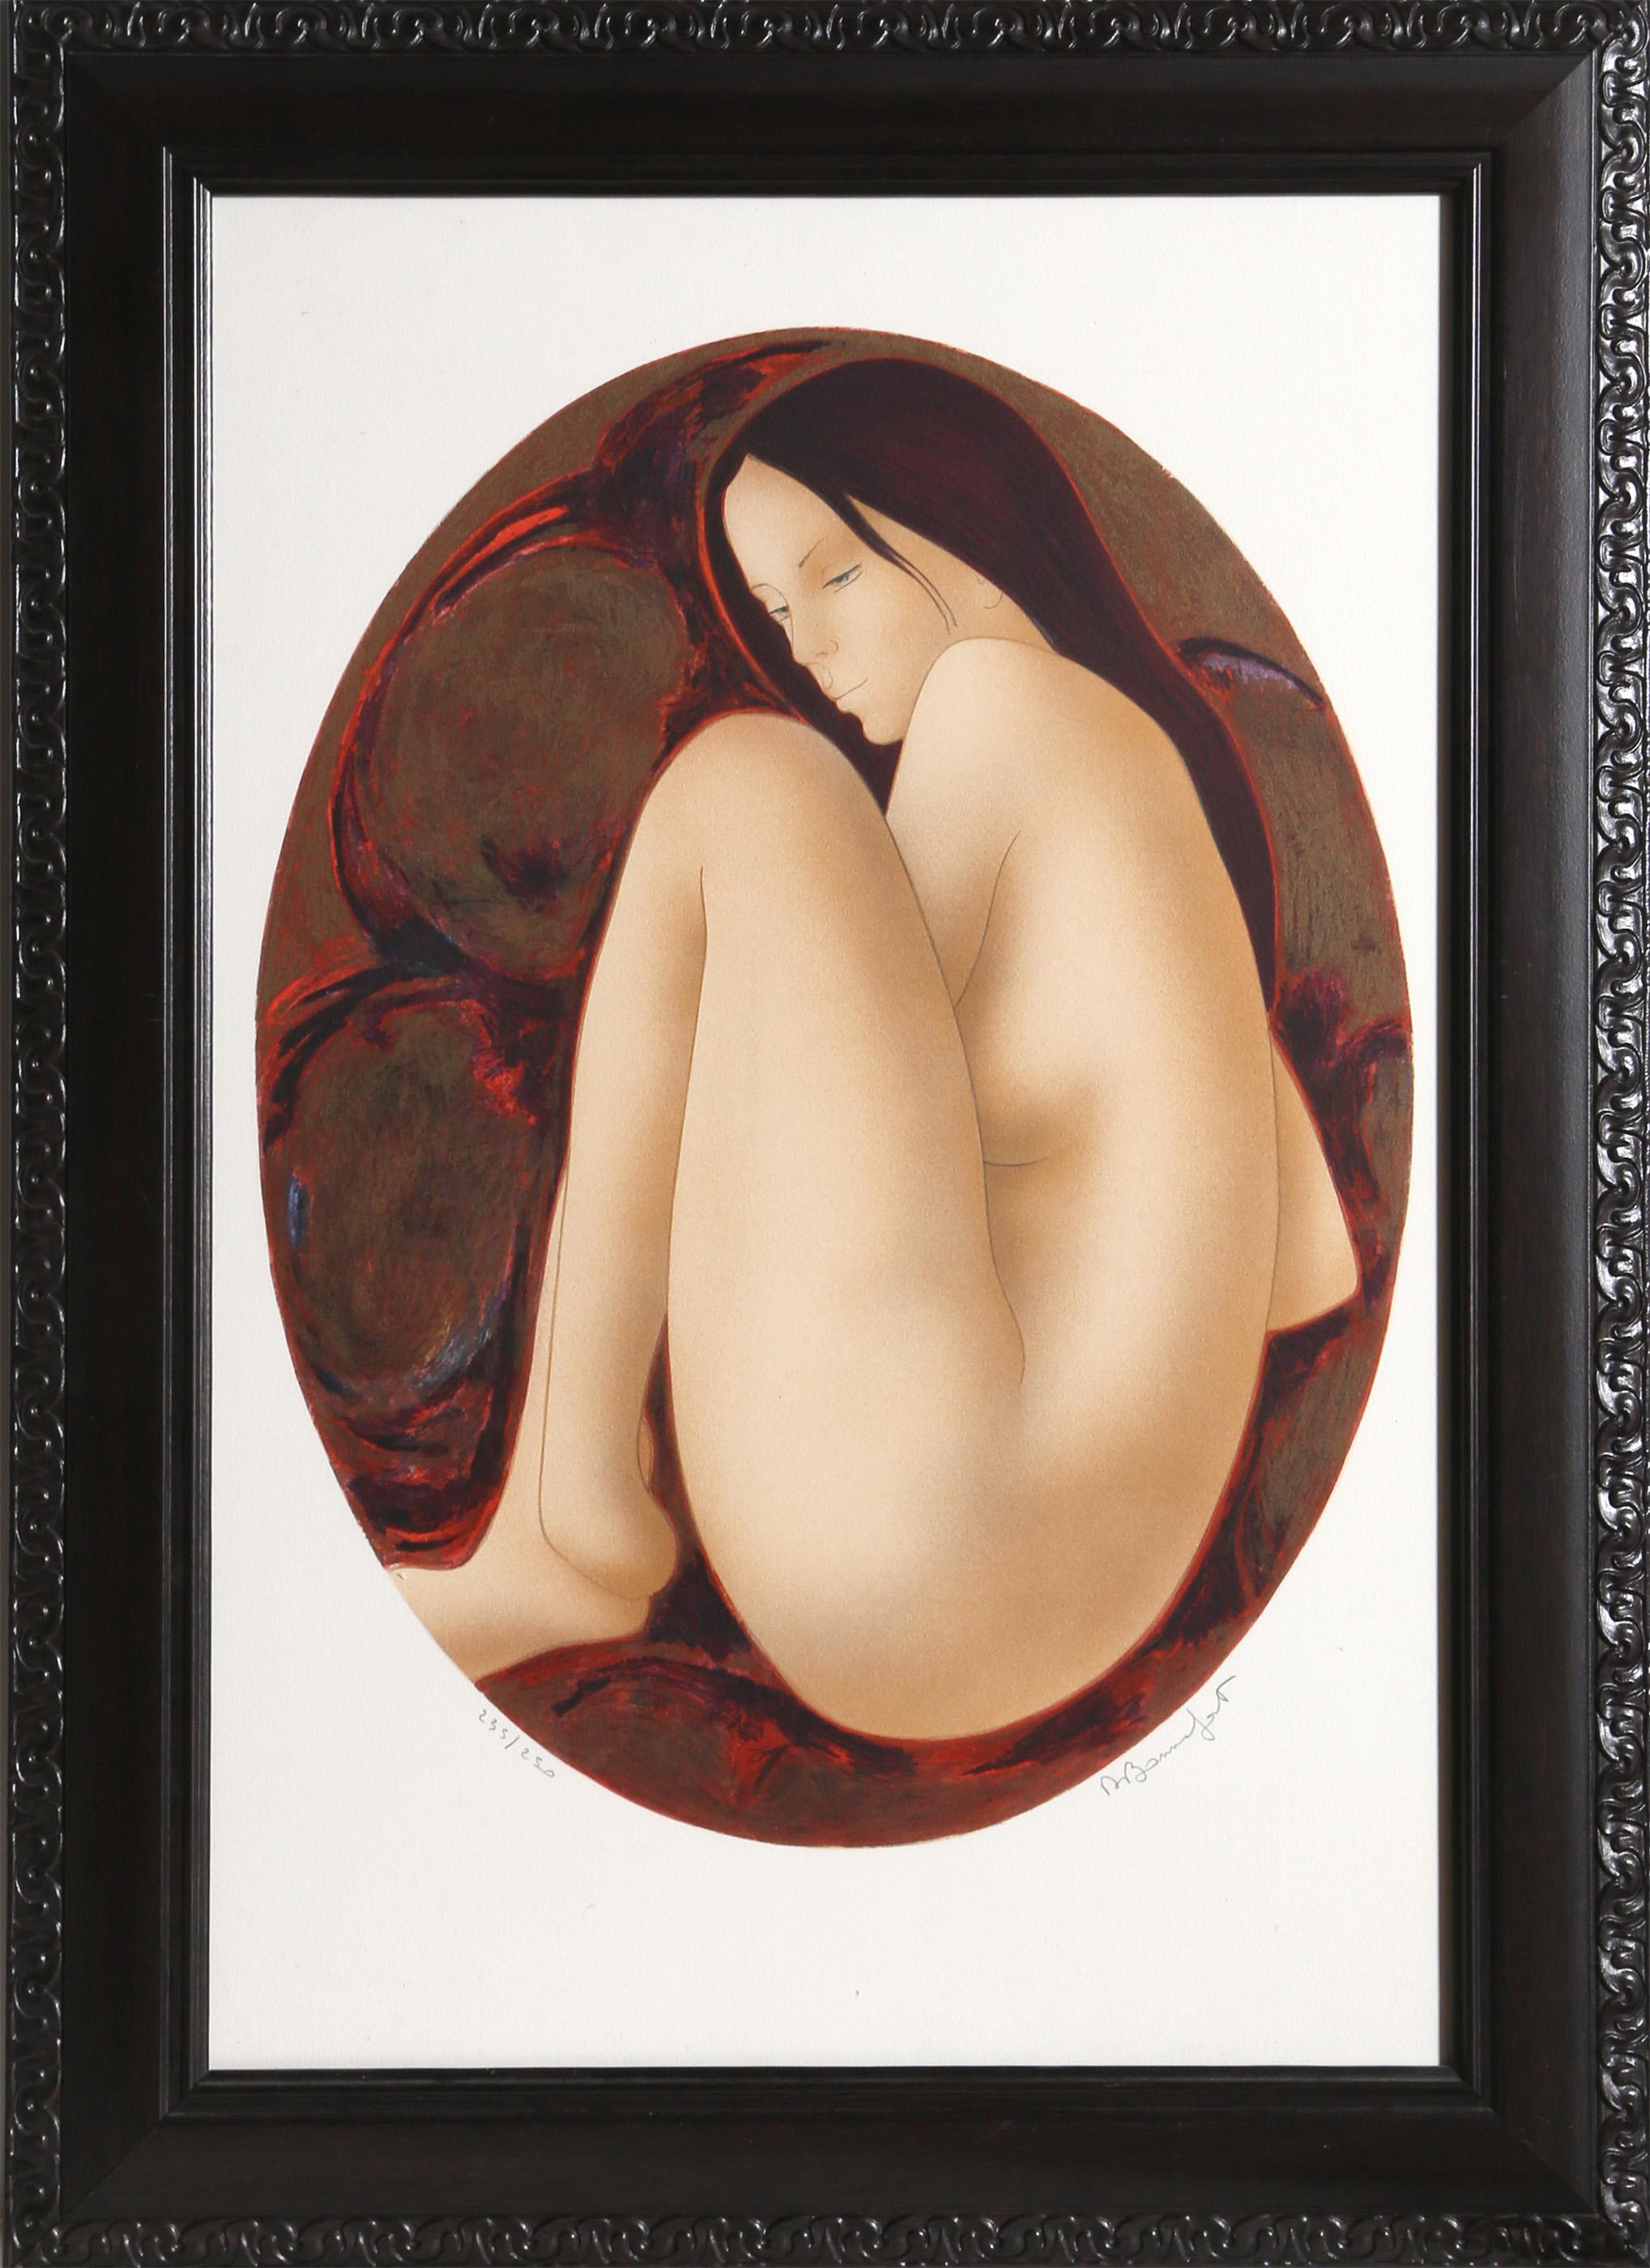 Alain Bonnefoit, Seated Brunette Nude, Lithograph